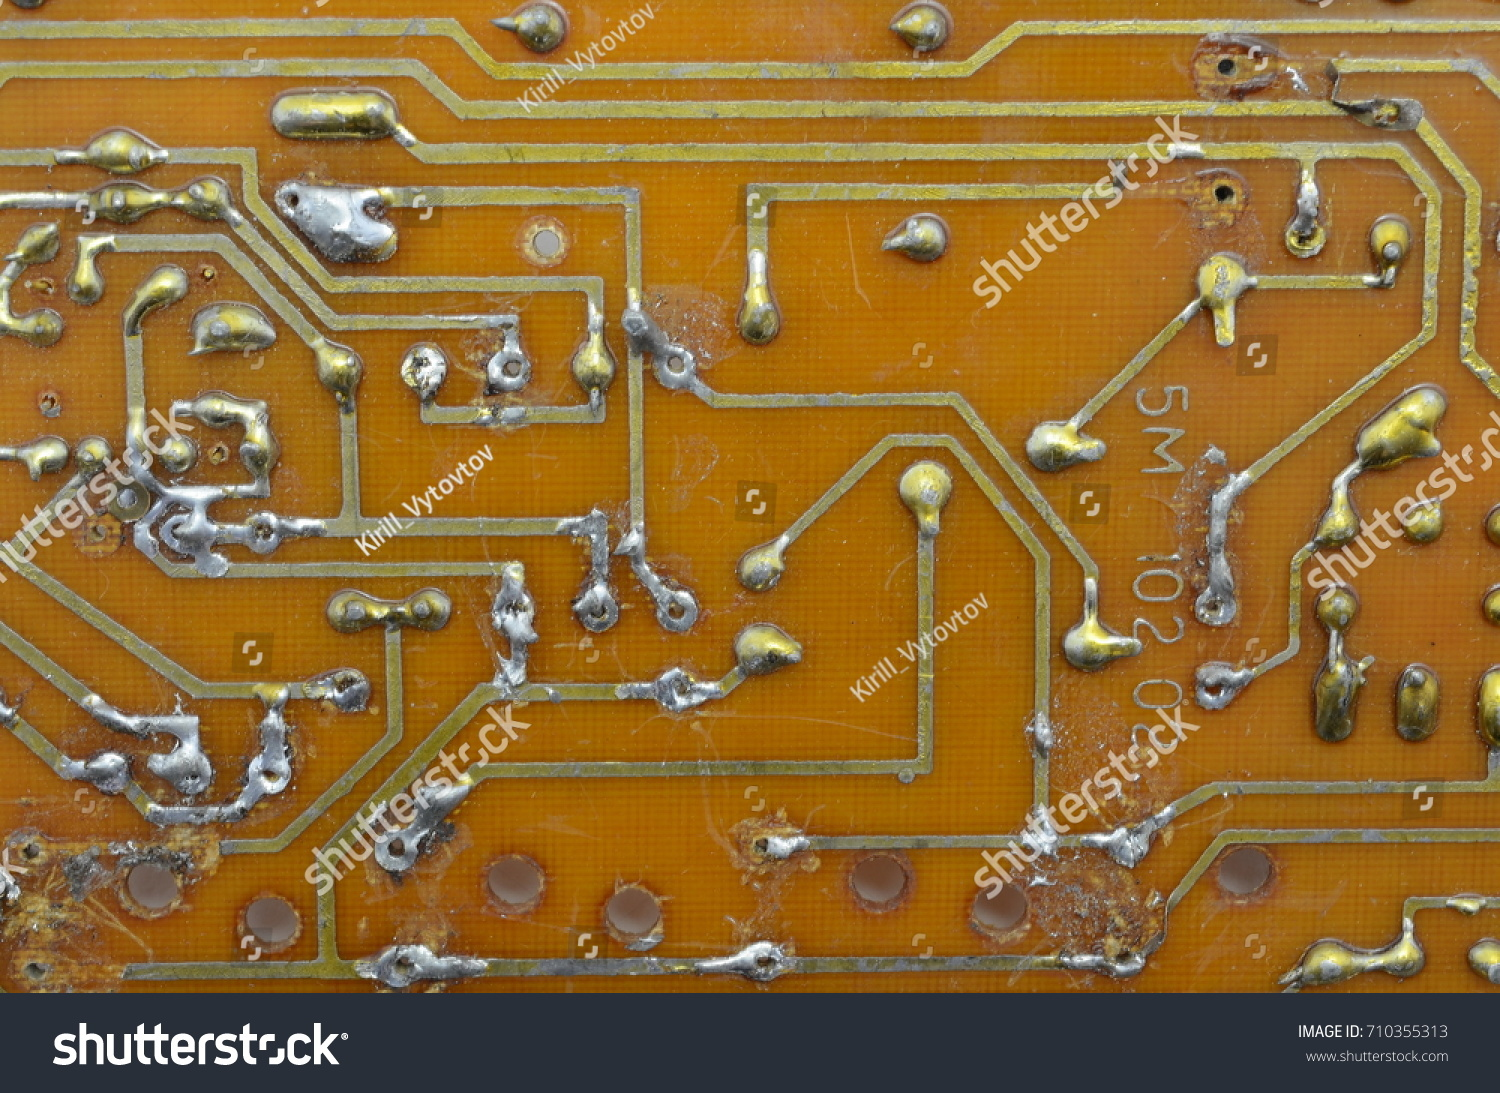 Old Homemade Printed Circuit Board Electronic Stock Photo Edit Now Picture Of With Components And Conductors Background